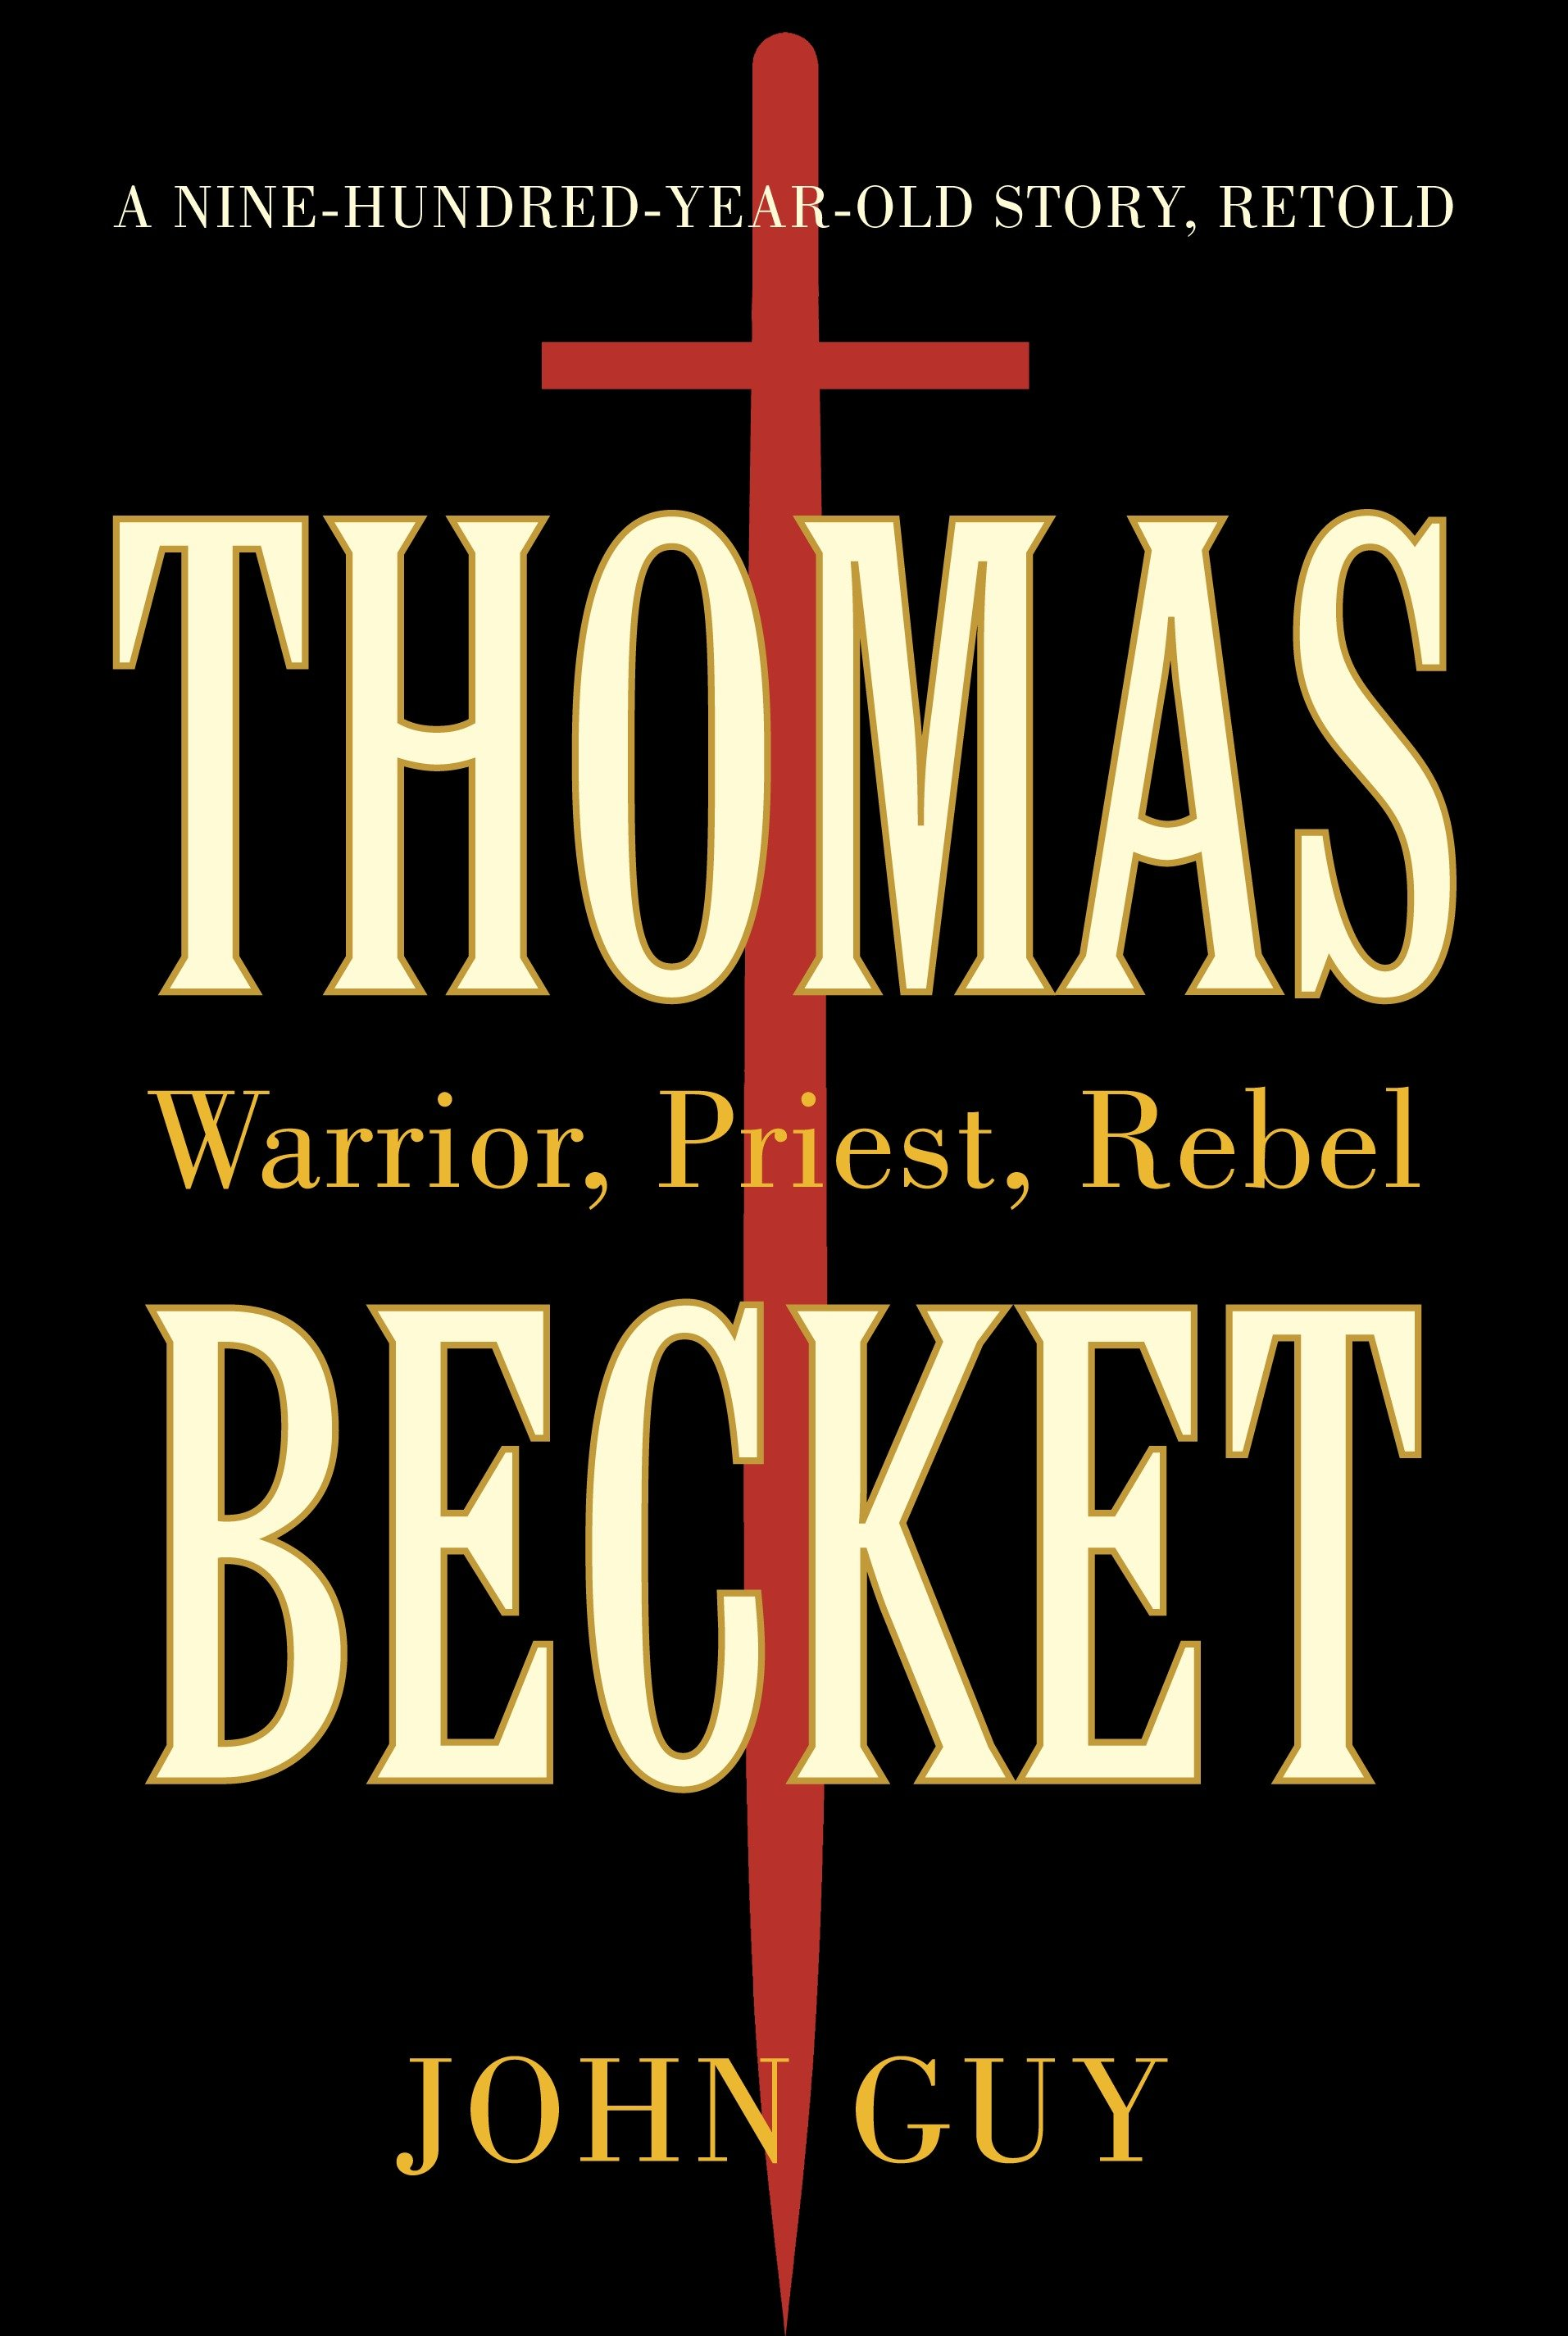 Thomas Becket warrior, priest, rebel : a nine-hundred-year-old story retold